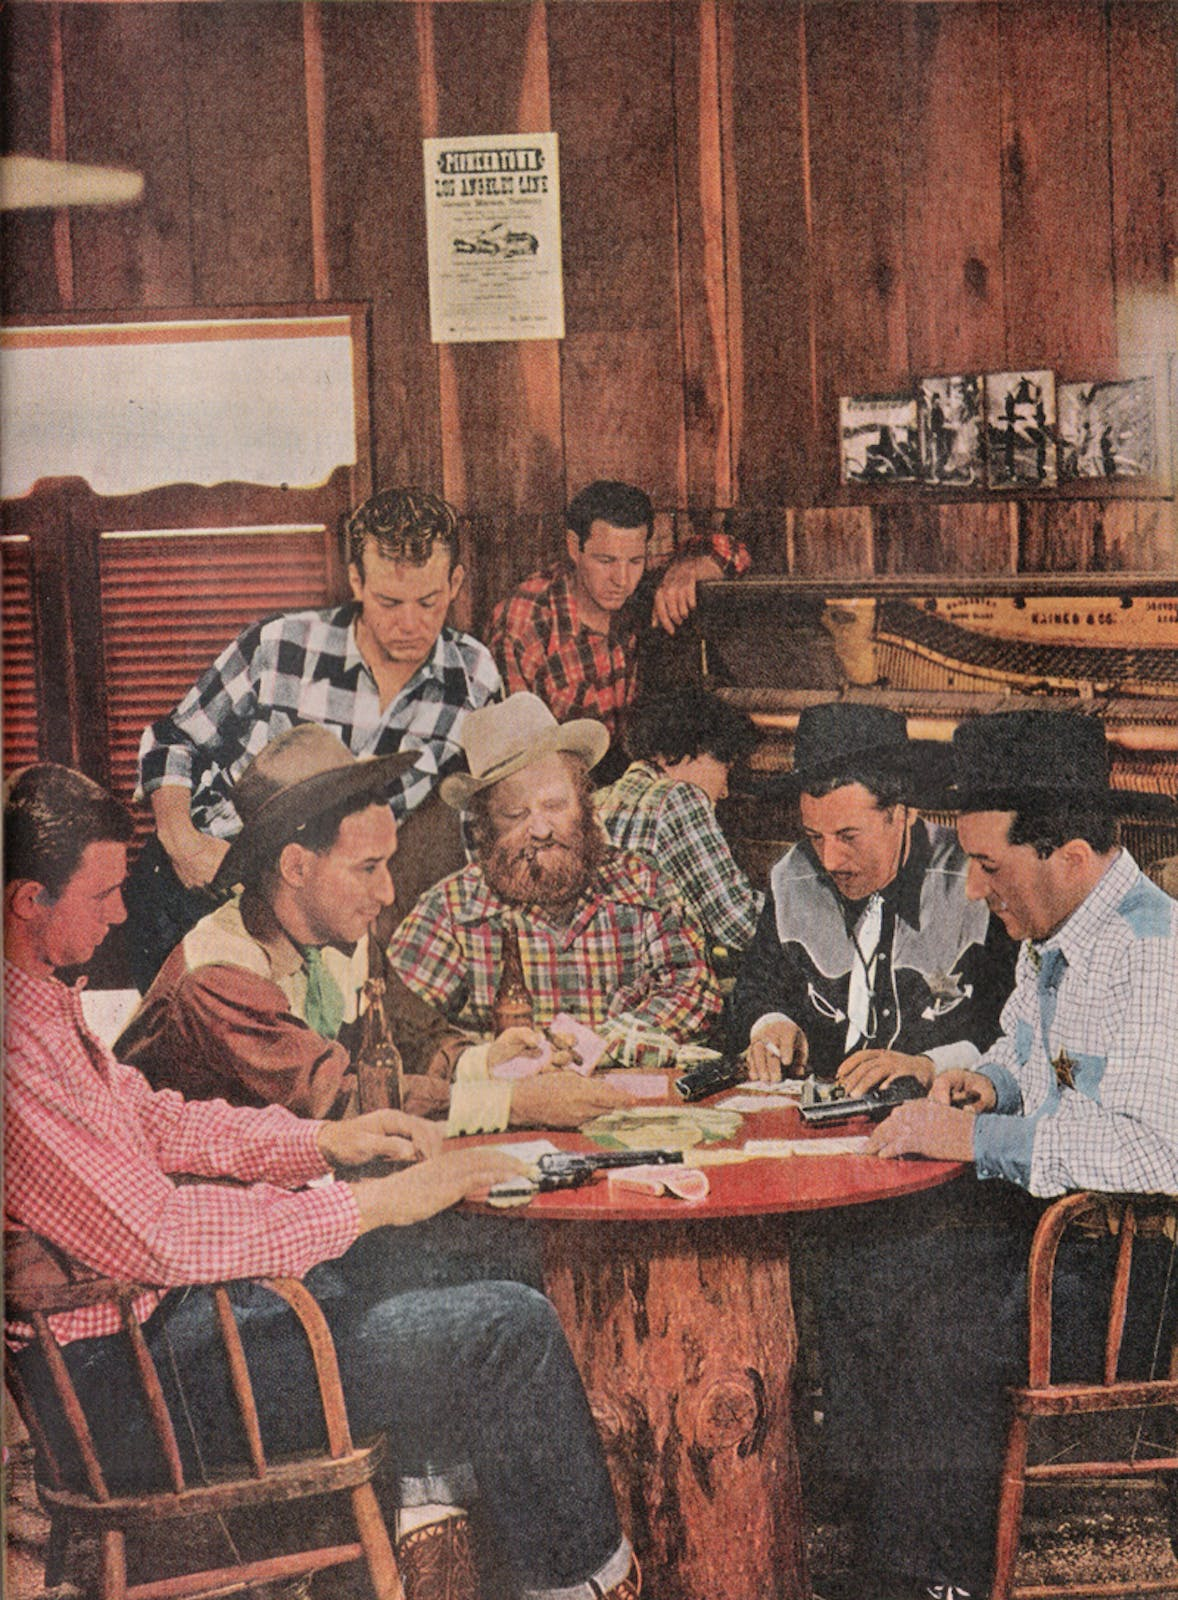 playing cards at the Red Dog Saloon